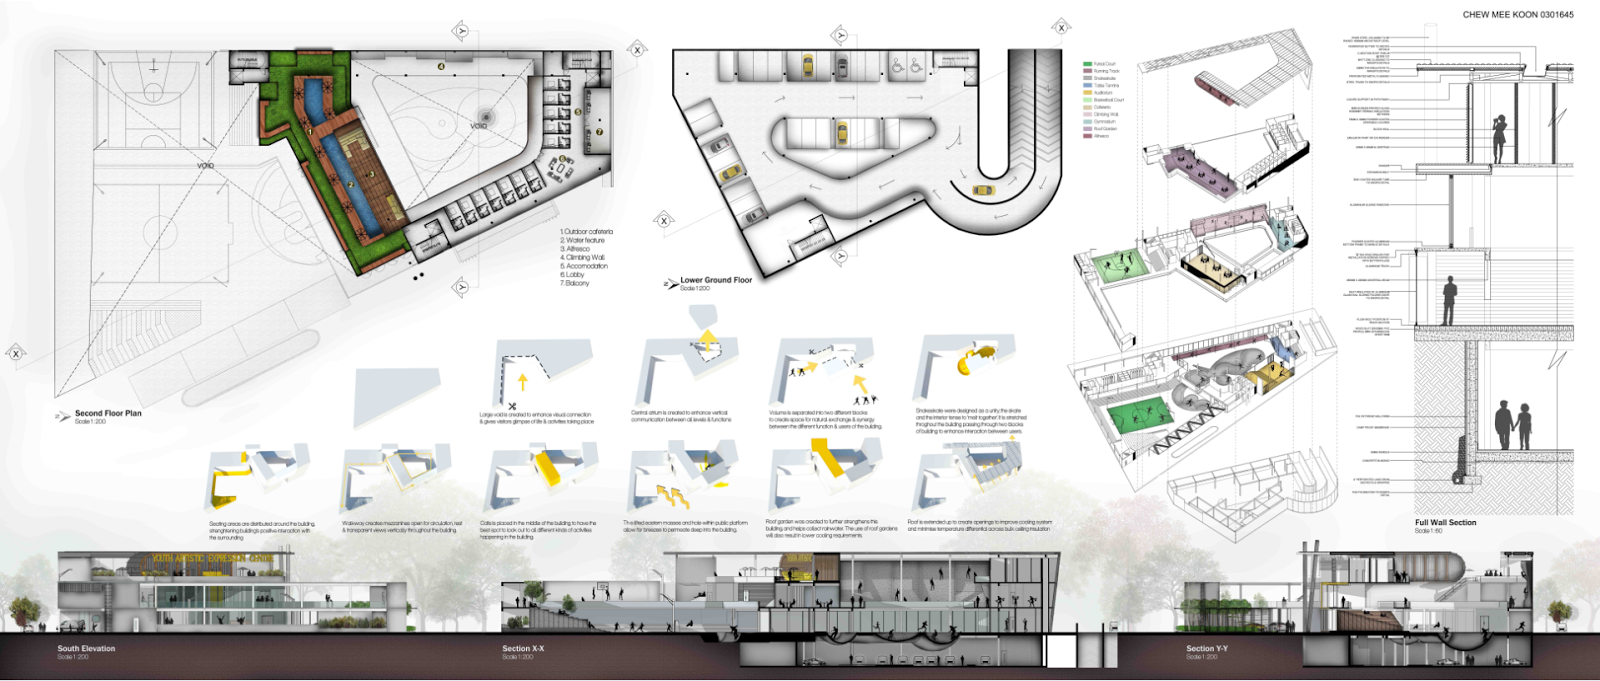 Charming Produce Drawings (both 2D And 3D), Modelling, Verbal Presentation And A Design  Report To Communicate And Visualize Architectural Design And Ideas